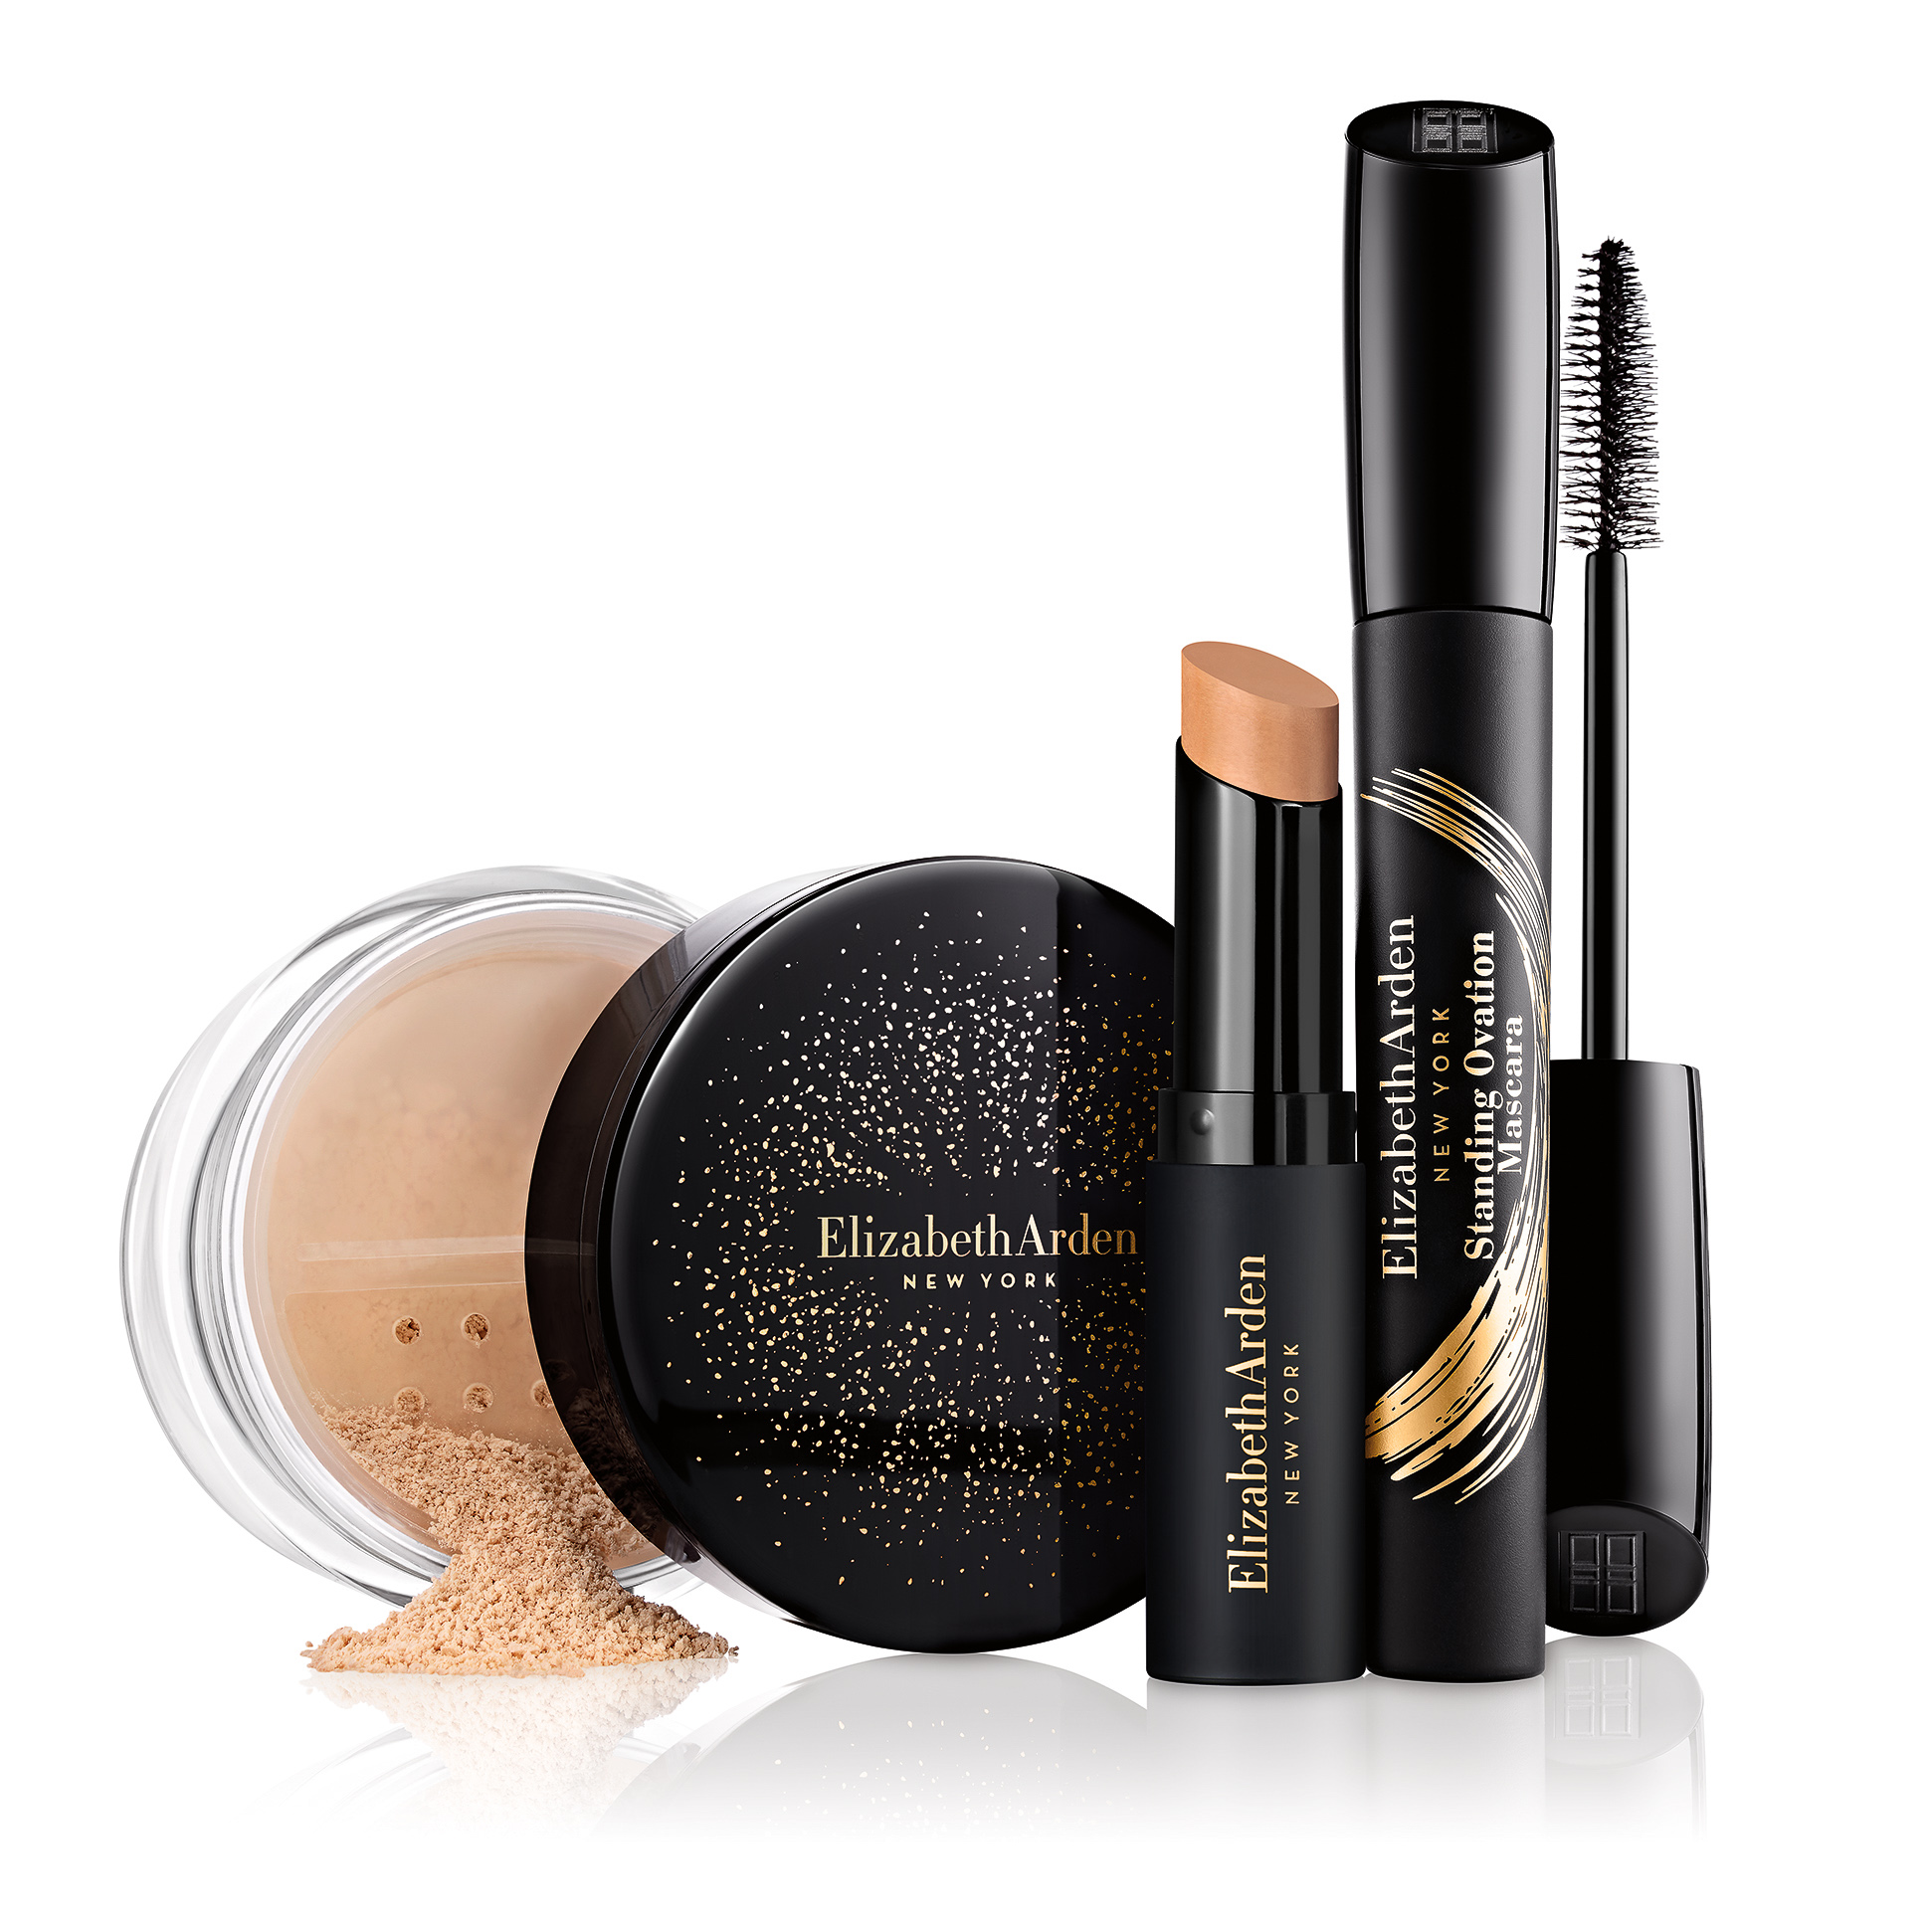 DramaDefined_Inset_CleanPowder_140_with_concealer_flattened.jpg